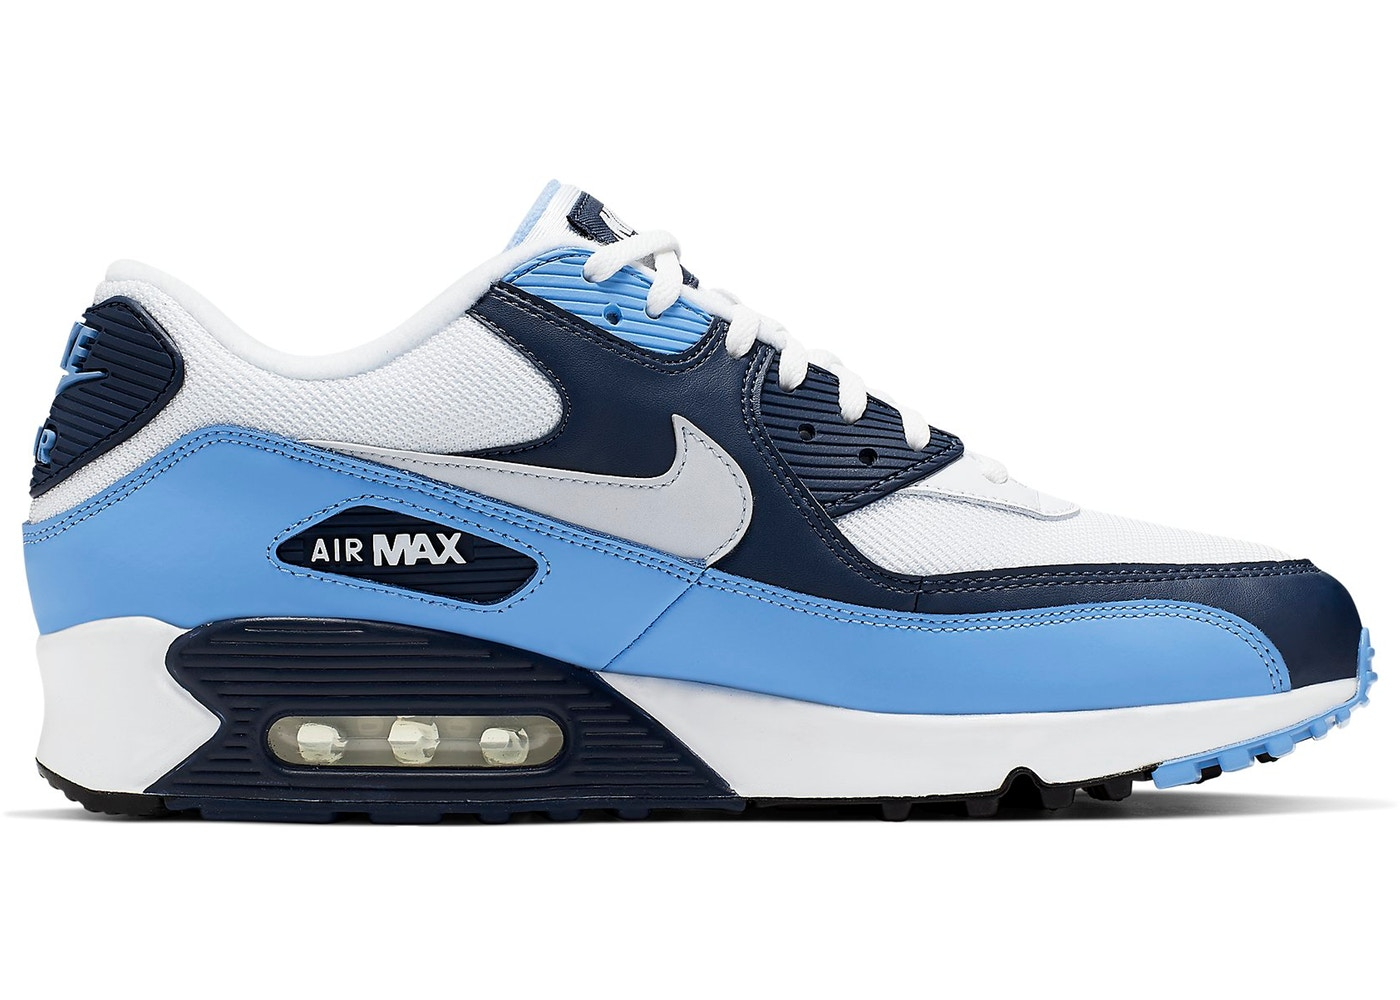 prettiest Mens 2010Nike Air Max 90 2007 White Cyber